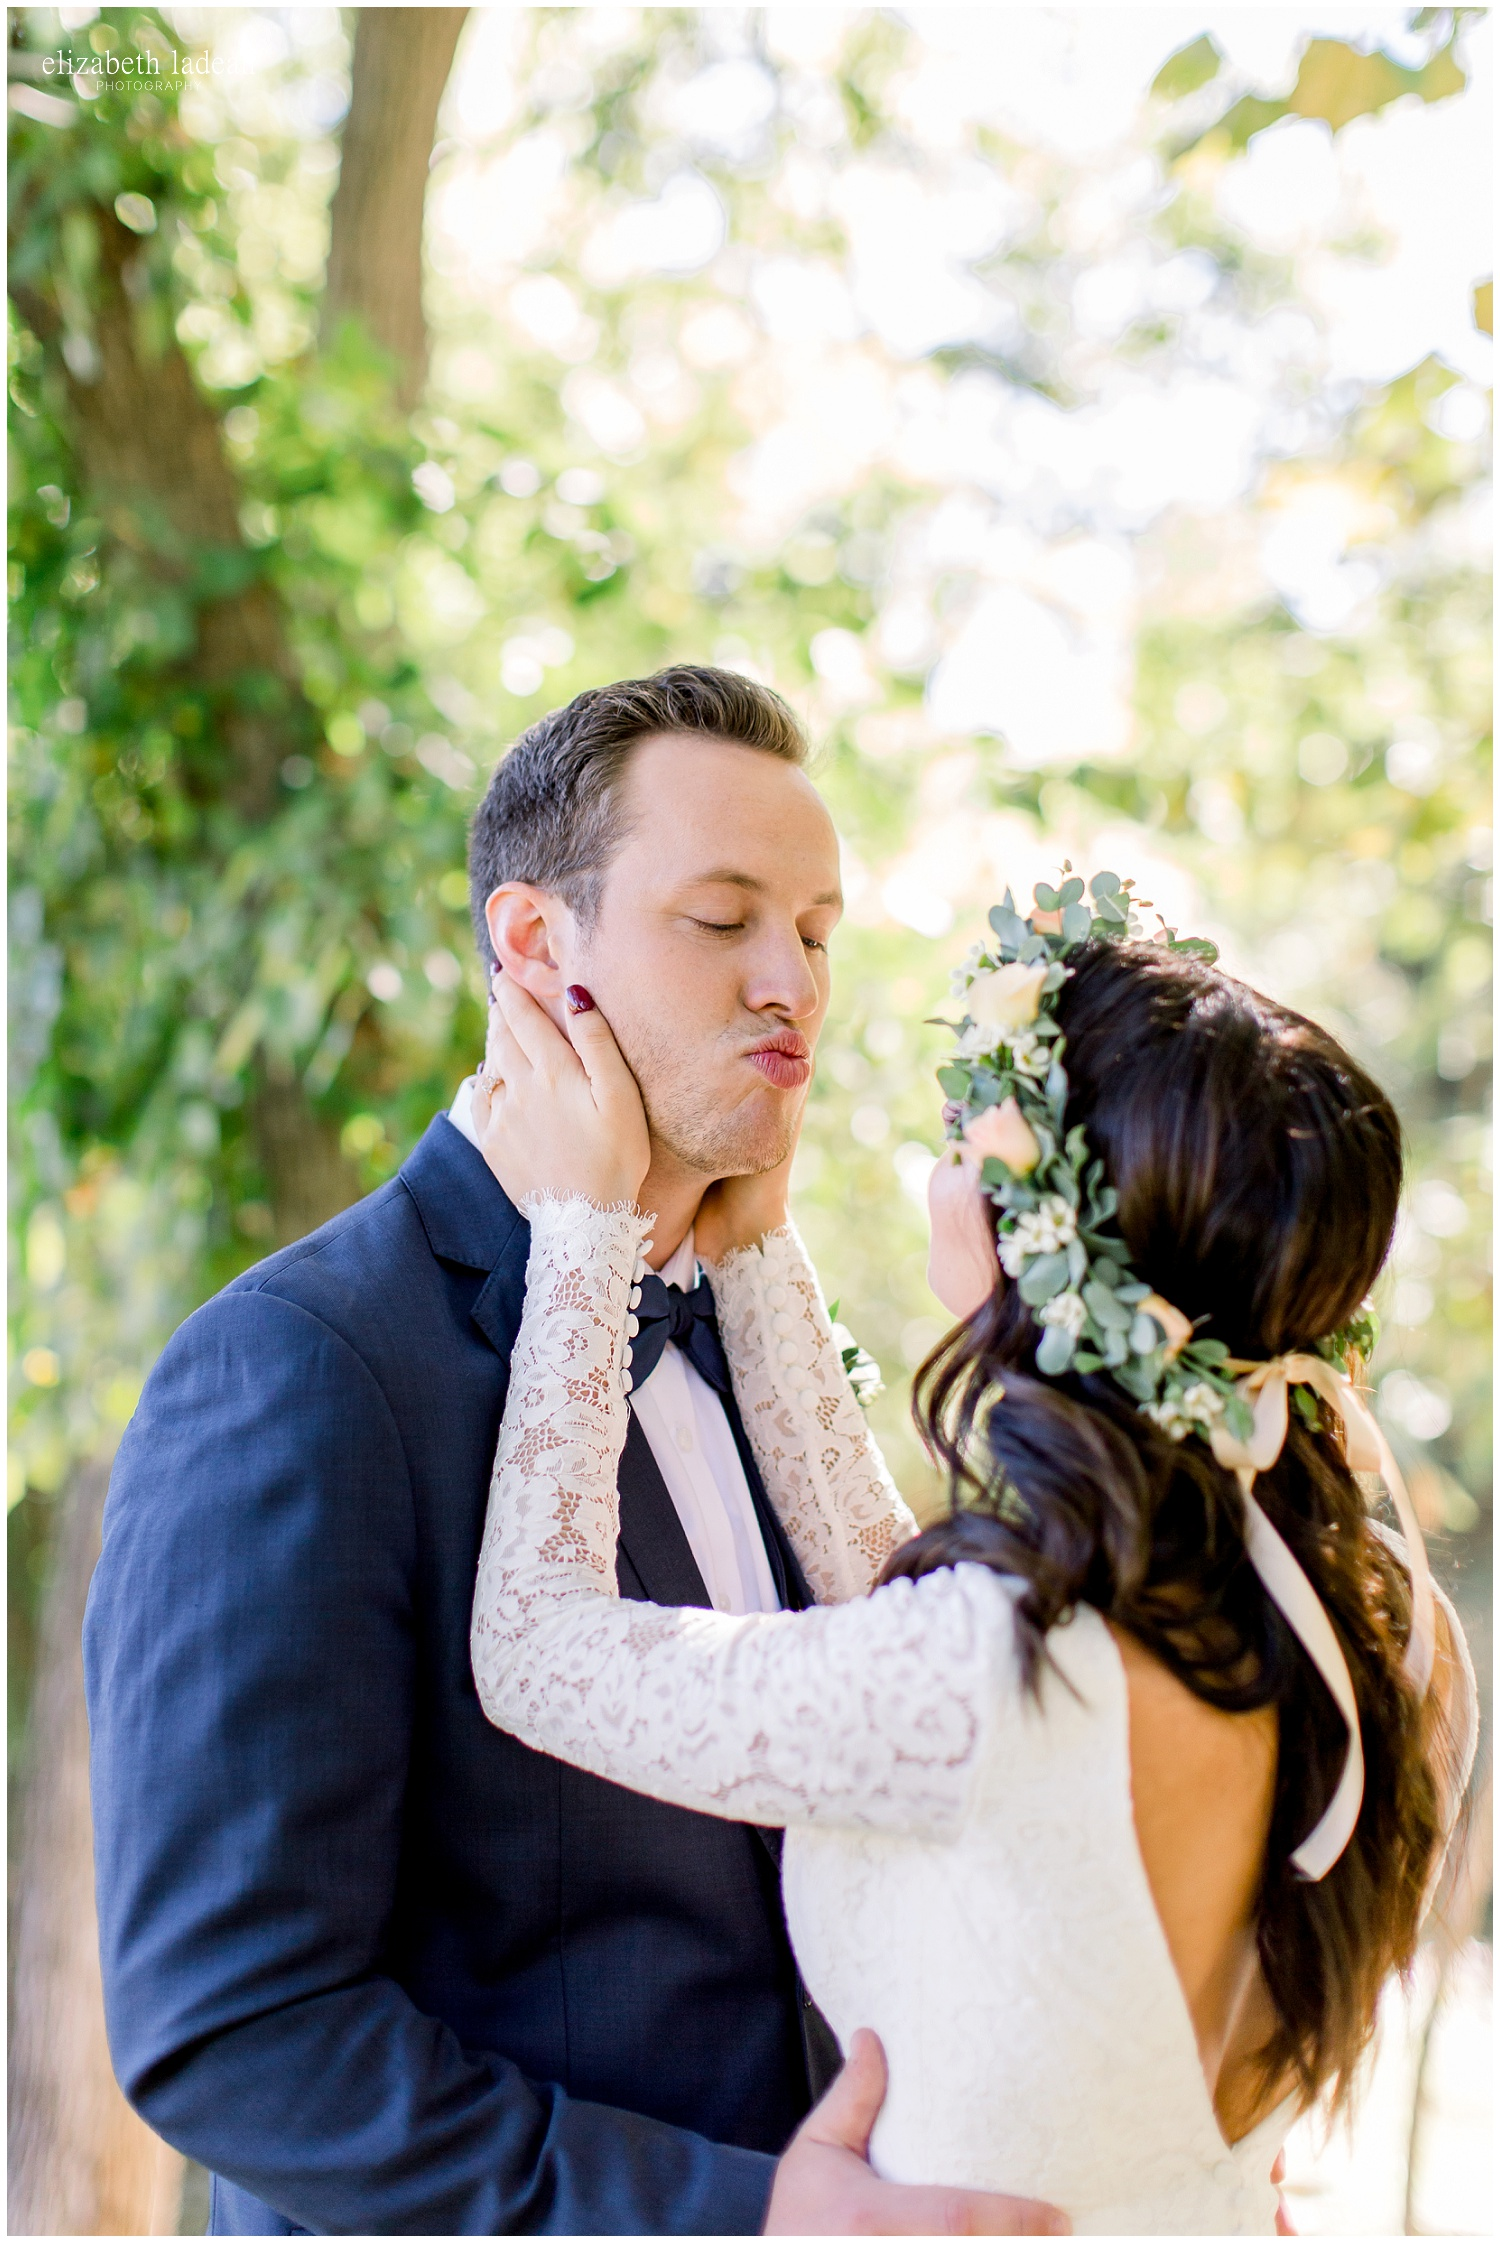 -behind-the-scenes-of-a-wedding-photographer-2018-elizabeth-ladean-photography-photo_3534.jpg